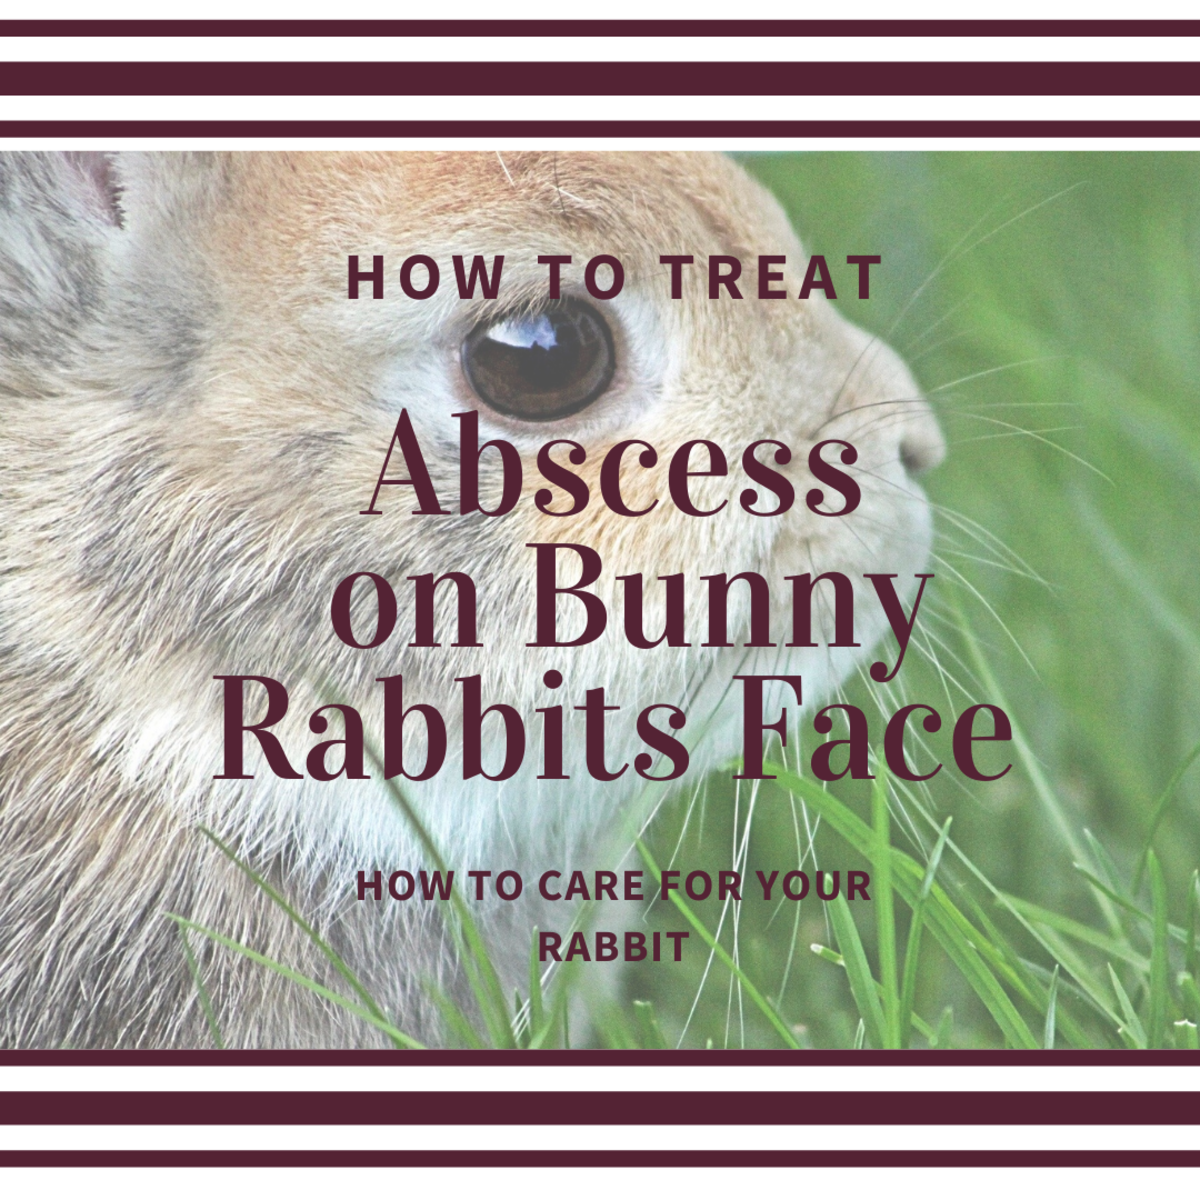 Treating an abscess on bunny rabbits face